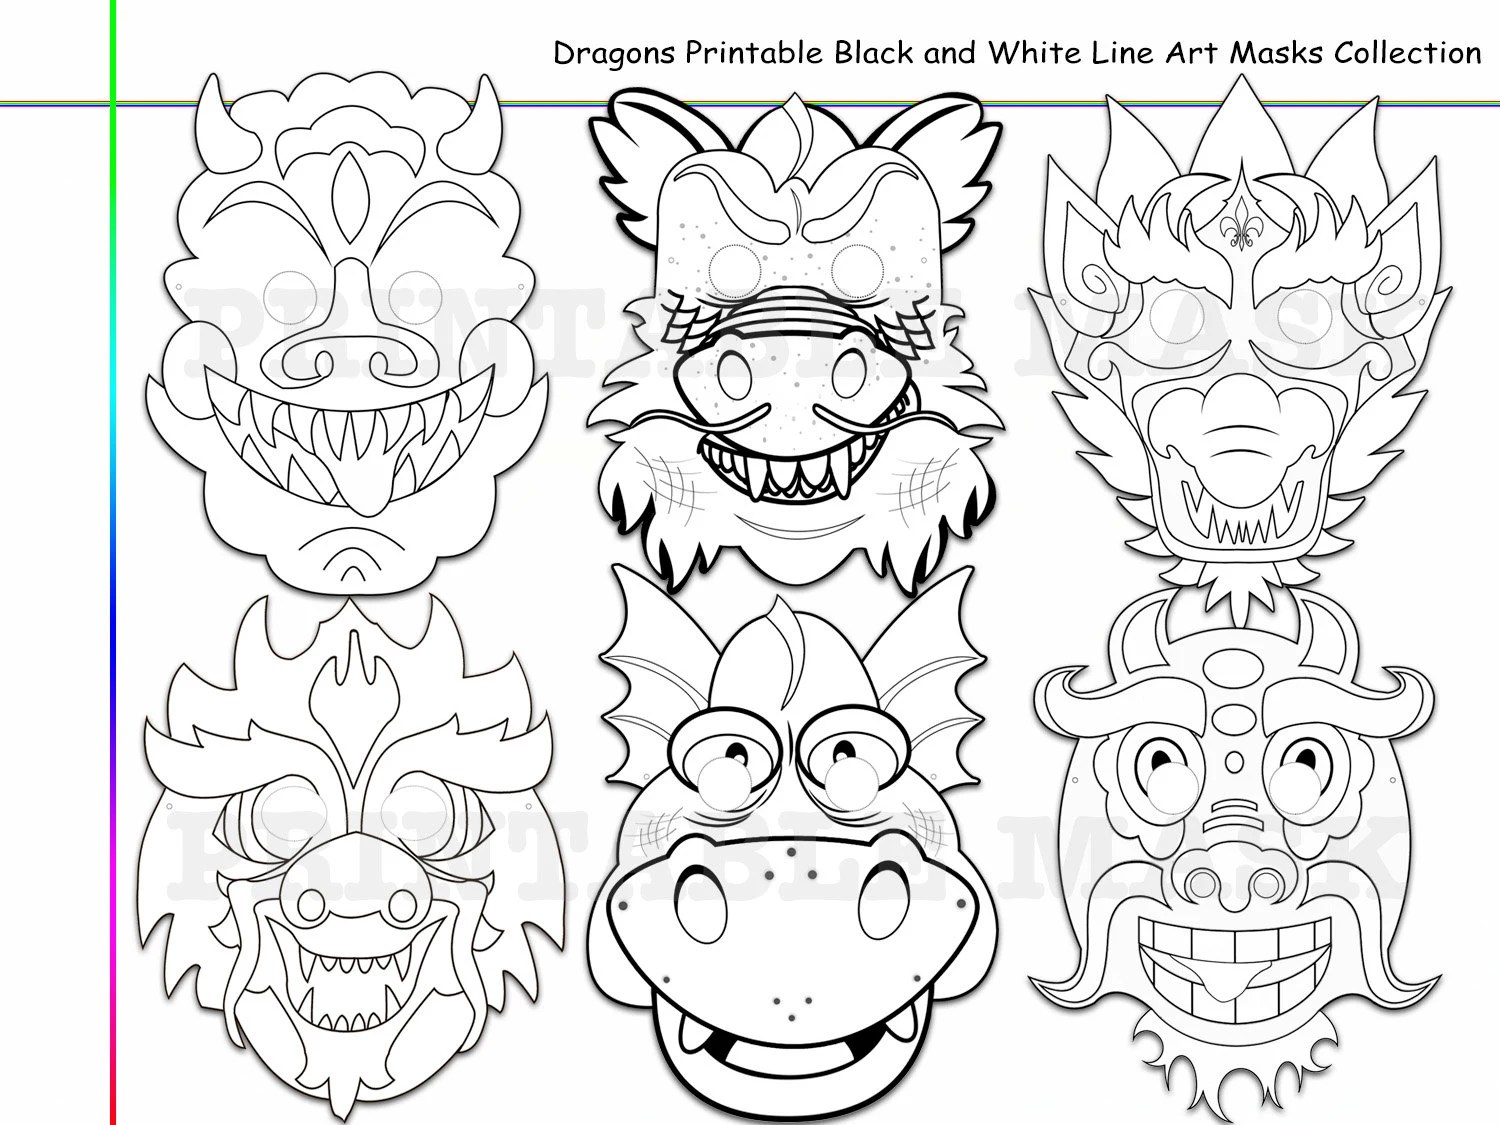 Unique Dragons Printable Black and White Line Art Masks kid